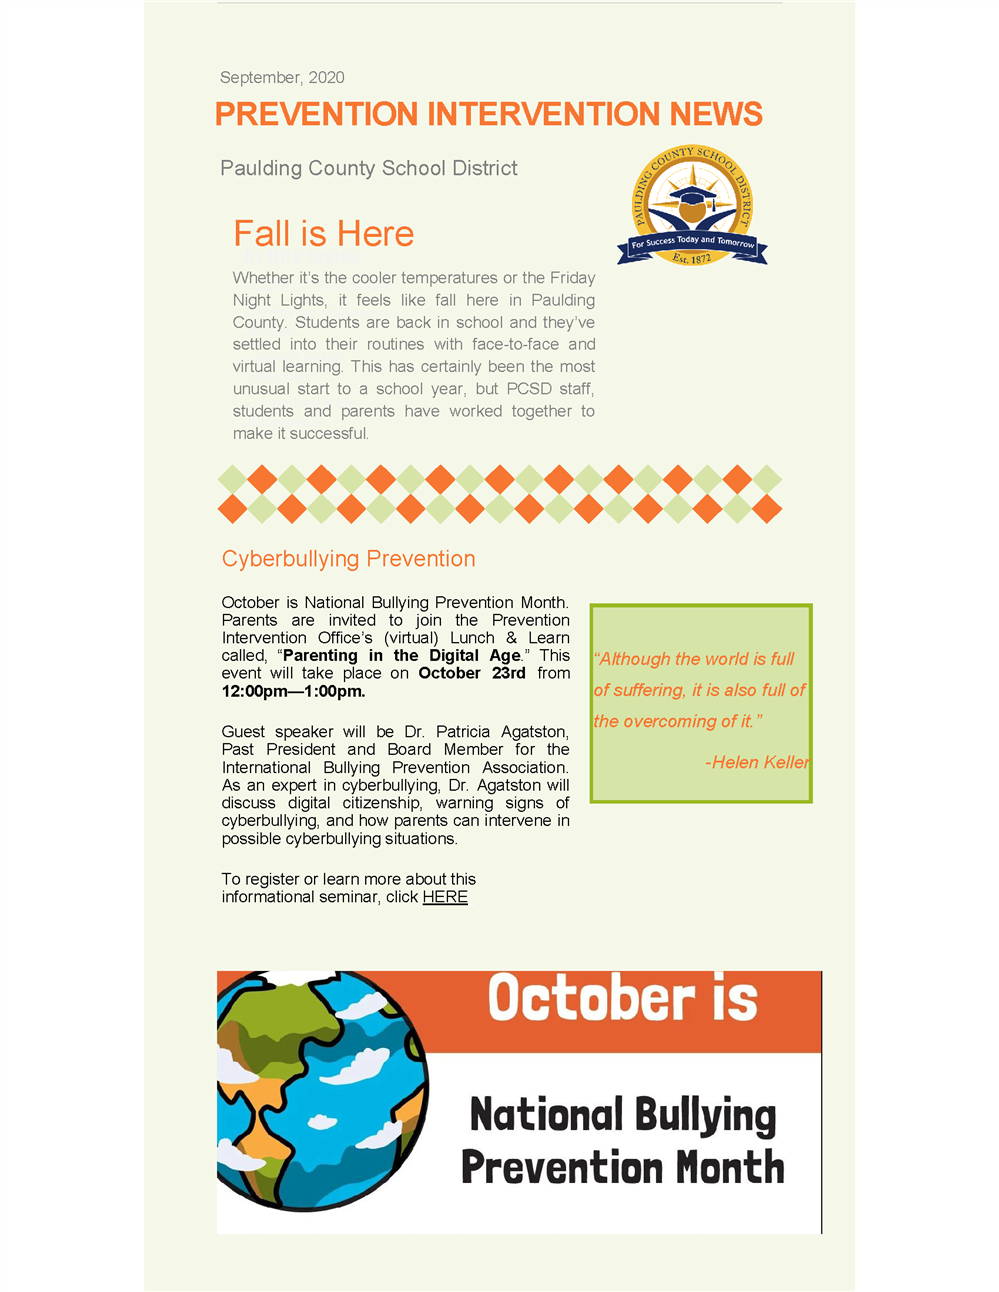 September 2020 Prevention Intervention Newsletter